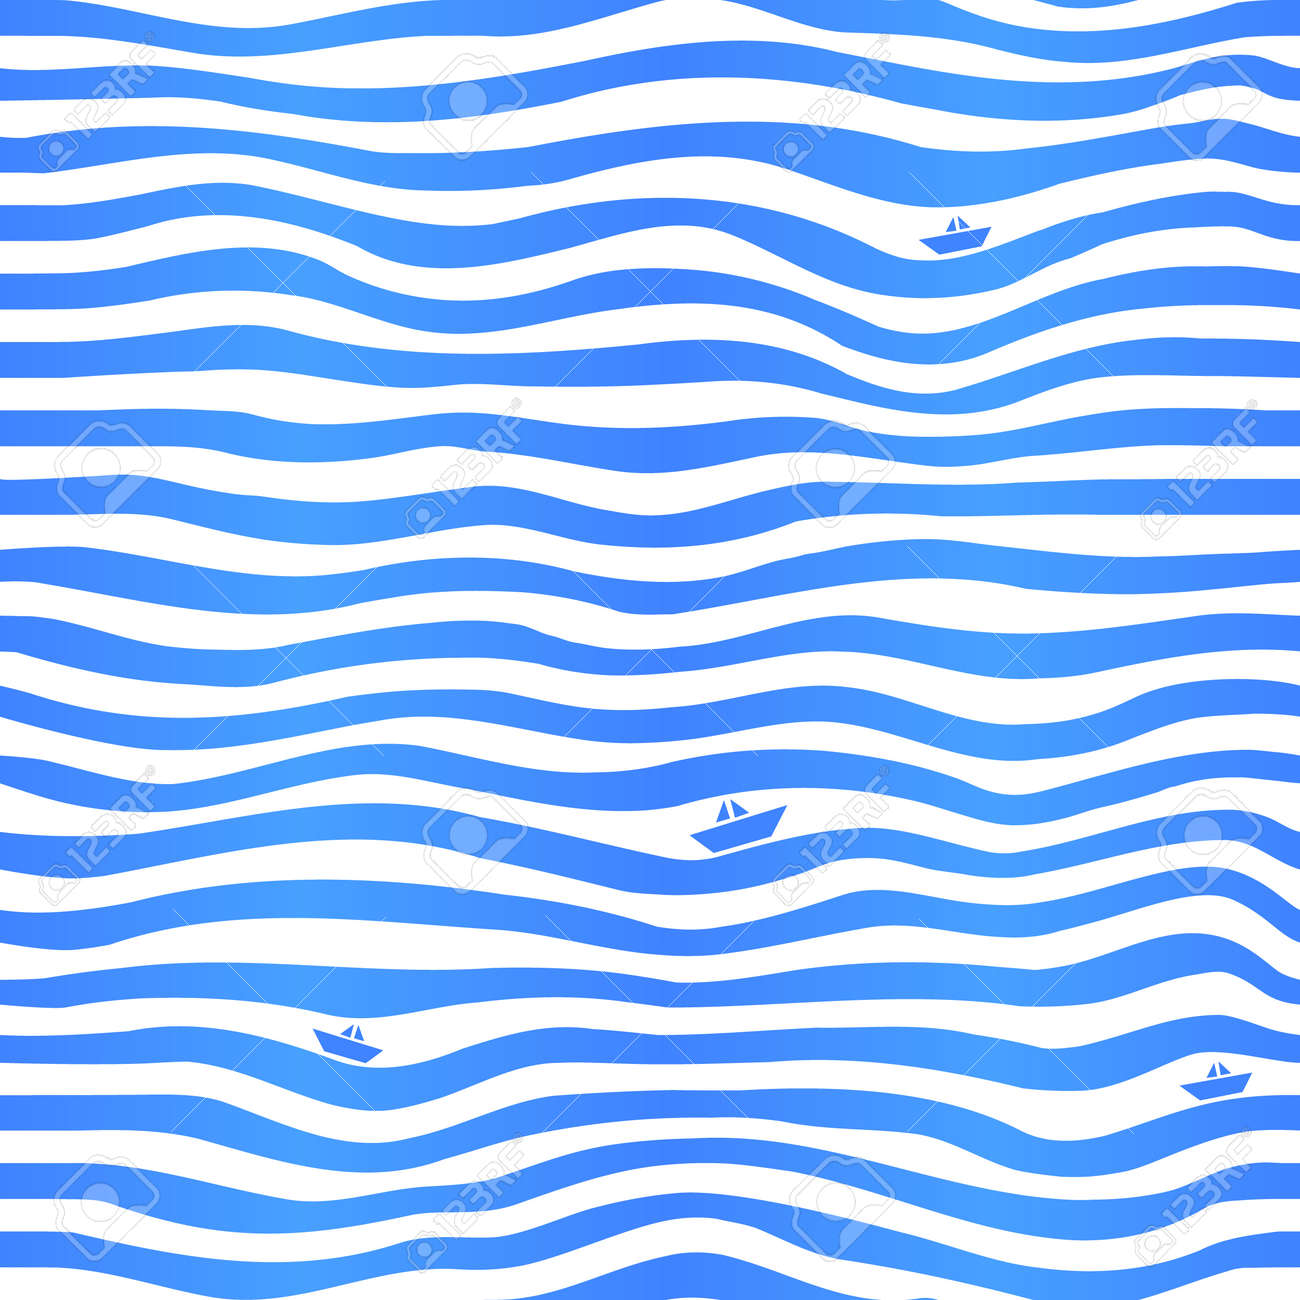 blue stripes wavy simple background with little boats royalty free